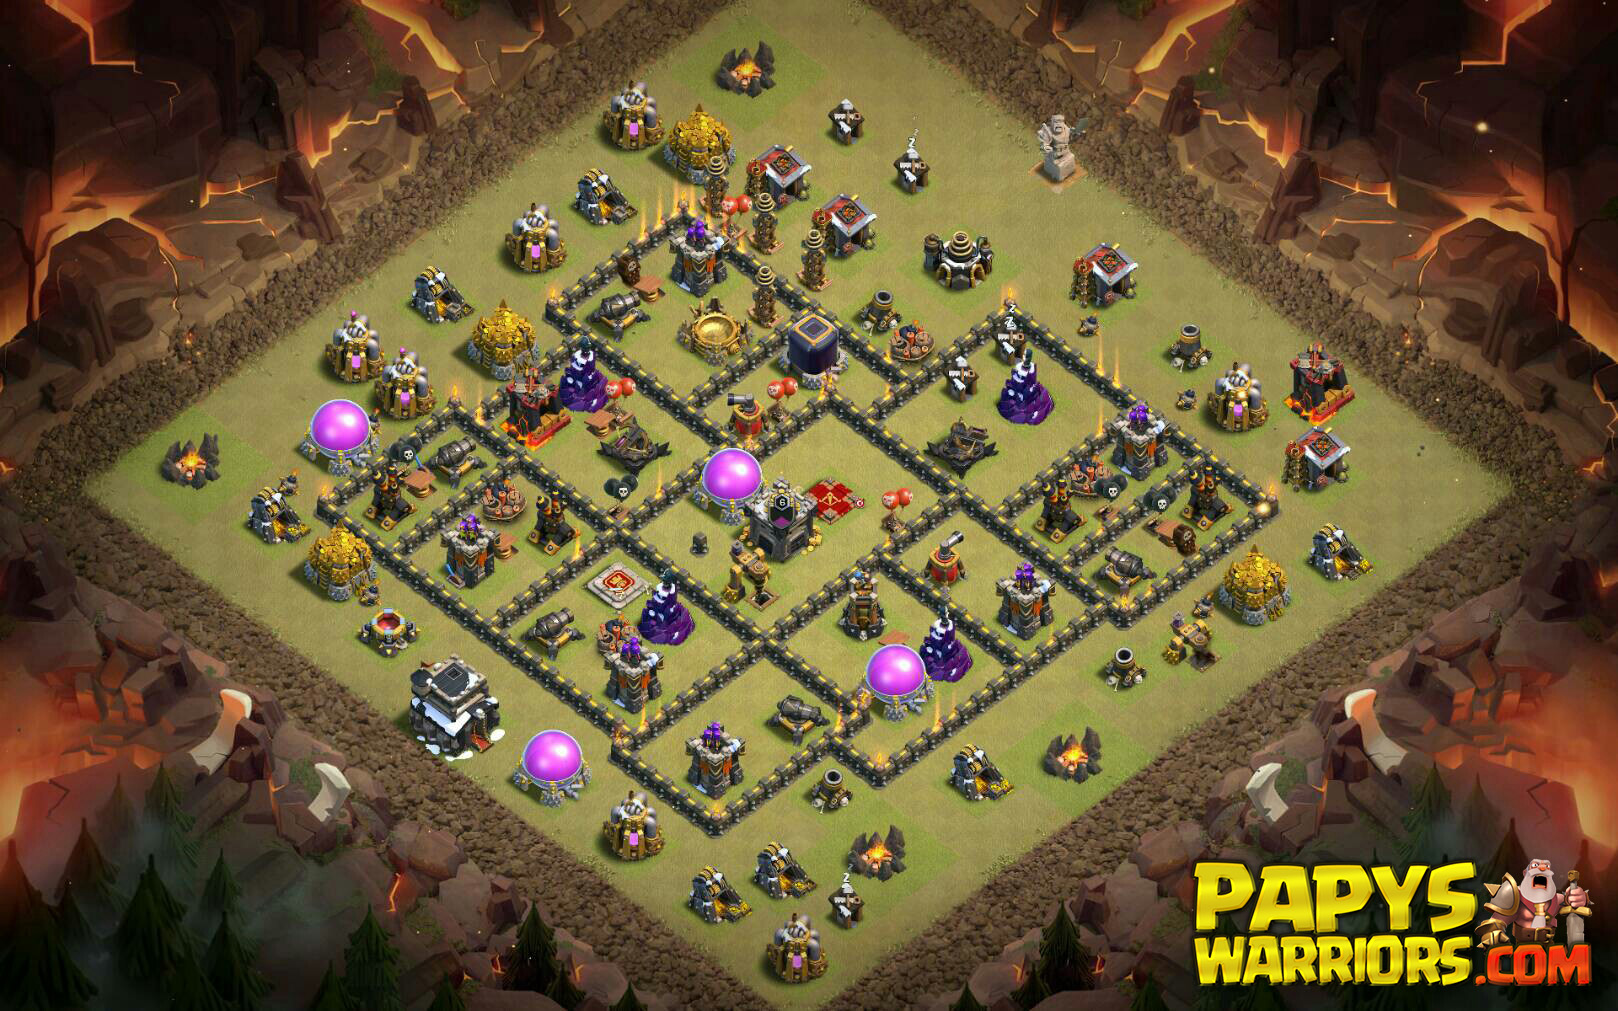 WAR BASE TH9 PAPYS WARRIORS 9